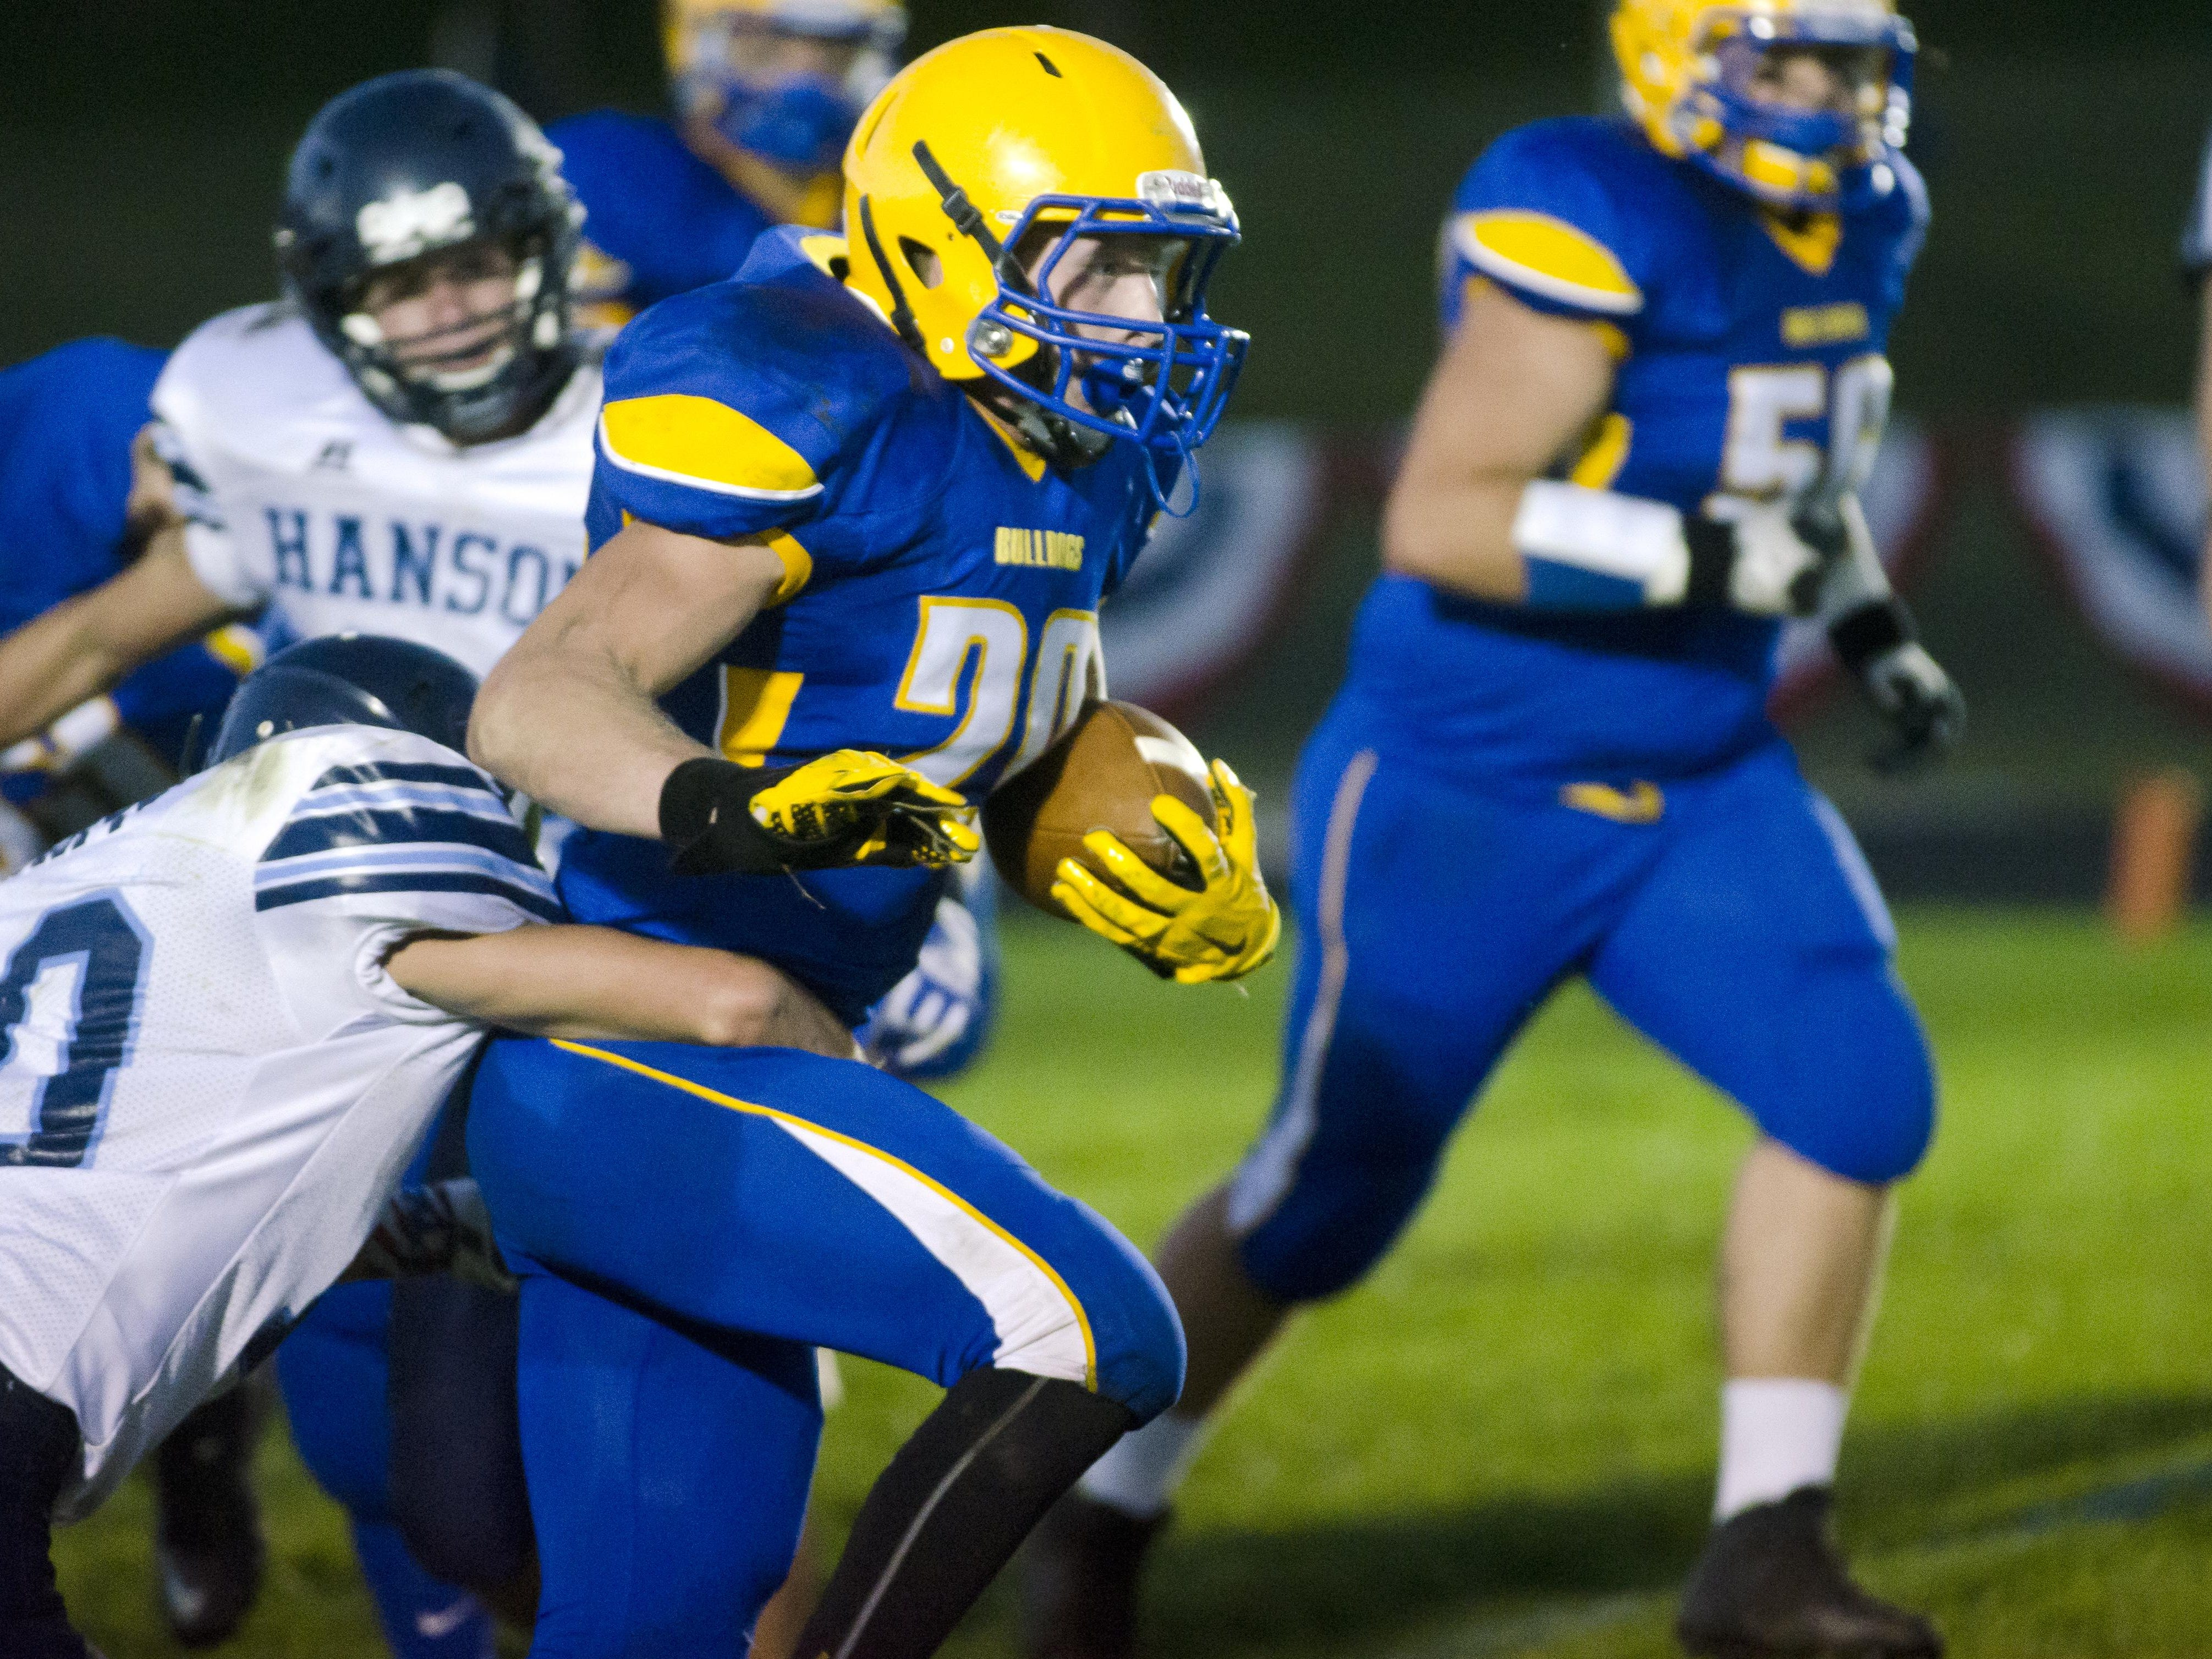 Baltic's Kadin Wolff carries the ball Friday, Sept. 16, against Hanson on Military Appreciation and Parents' Night at Baltic. Wolff had 14 carries for 237 yards and three touchdowns.